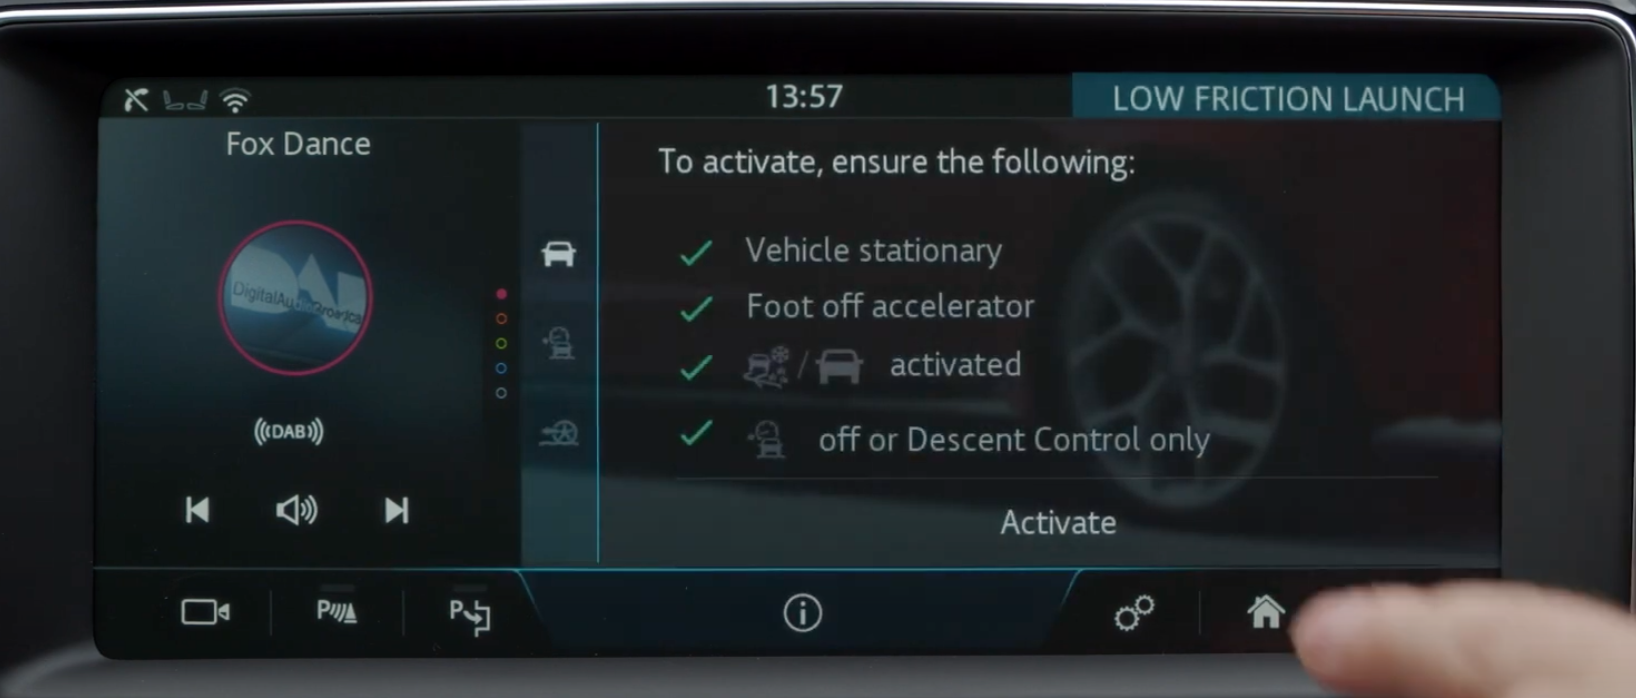 A list of steps that the user has to ensure before activating low friction launch